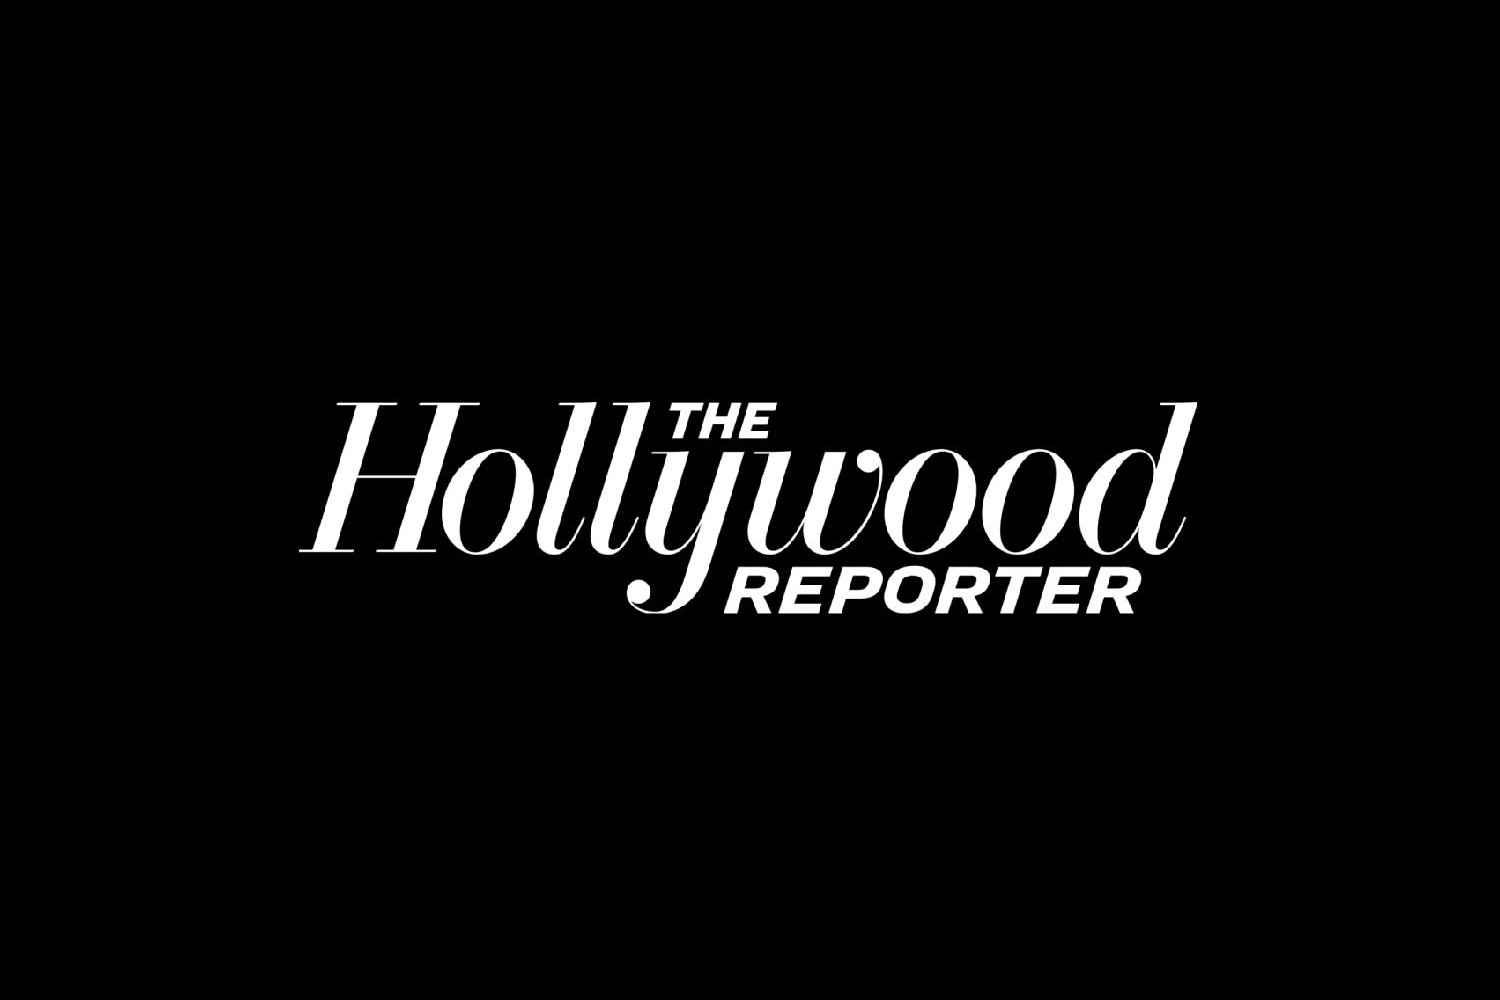 hollywood+reporter.jpg